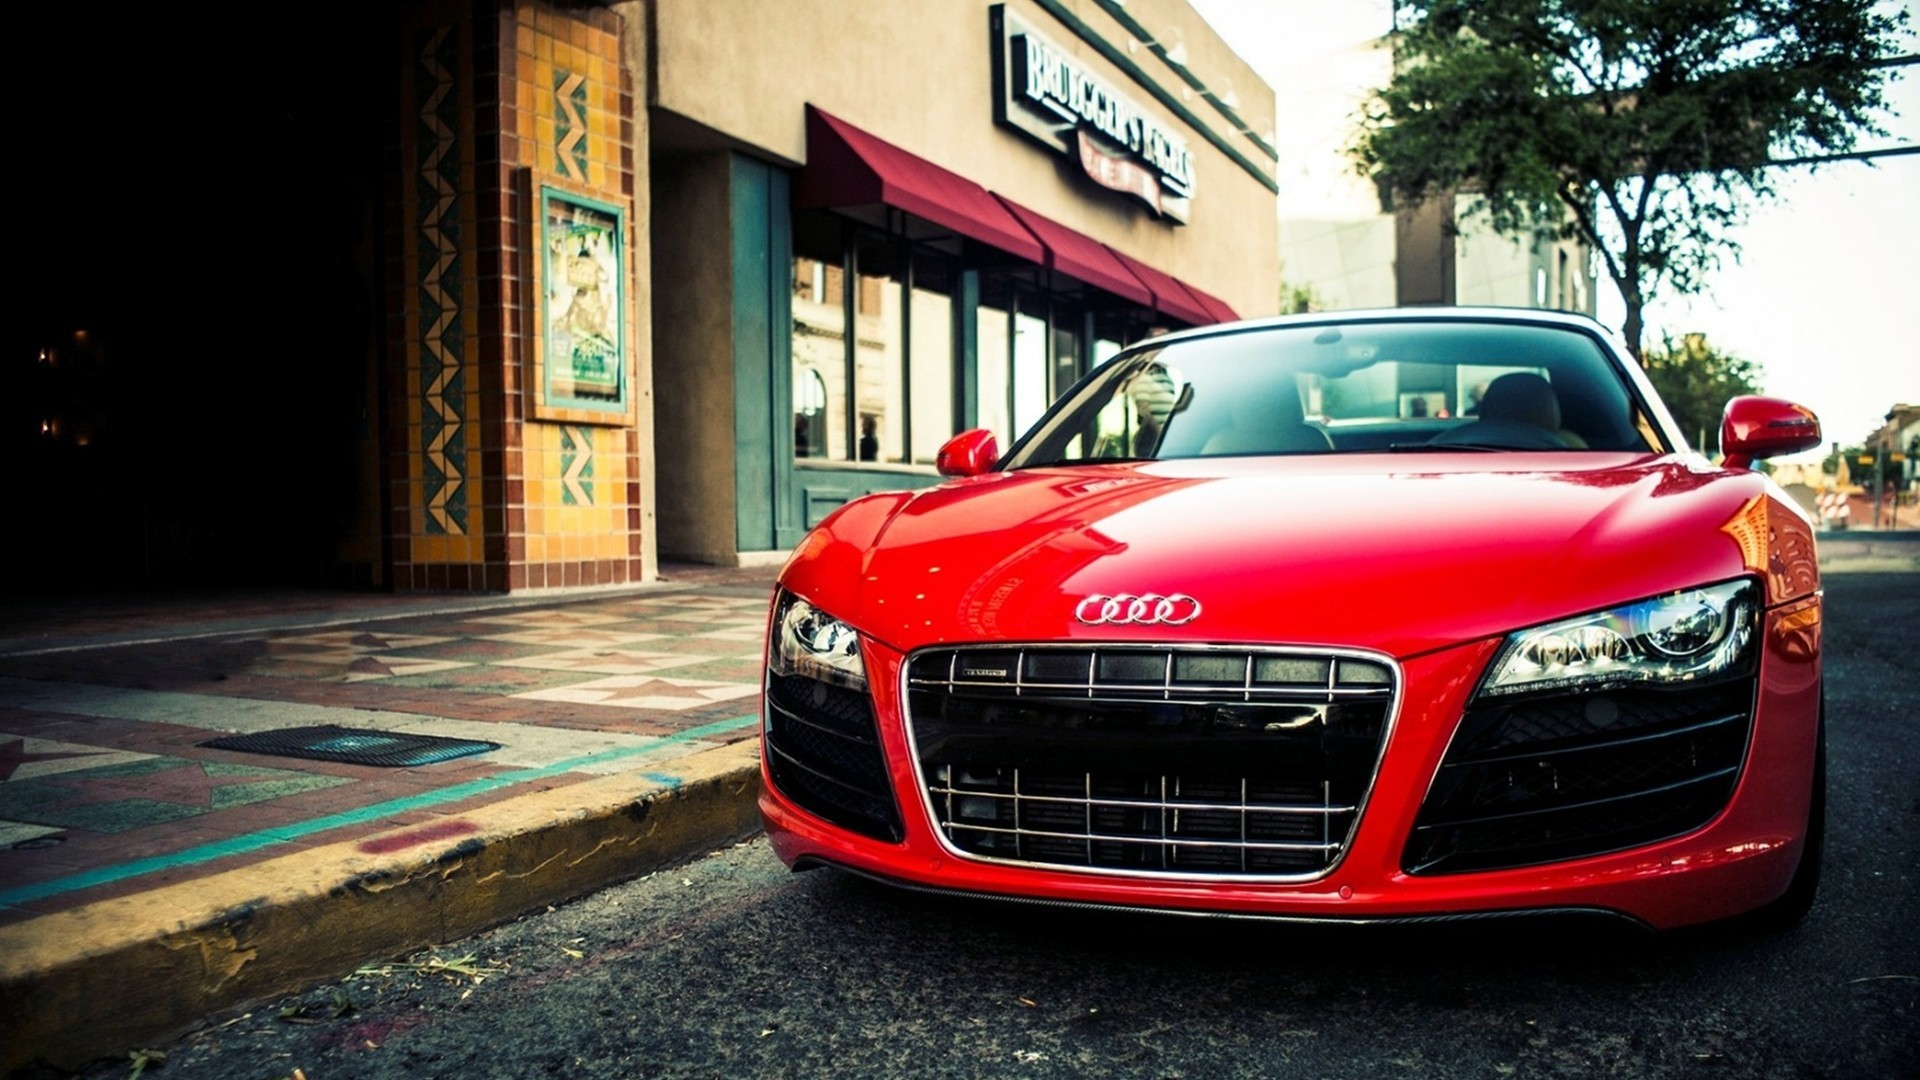 1920x1080 Red Aaudi R8 HD Wallpapers 1080p Super Cars